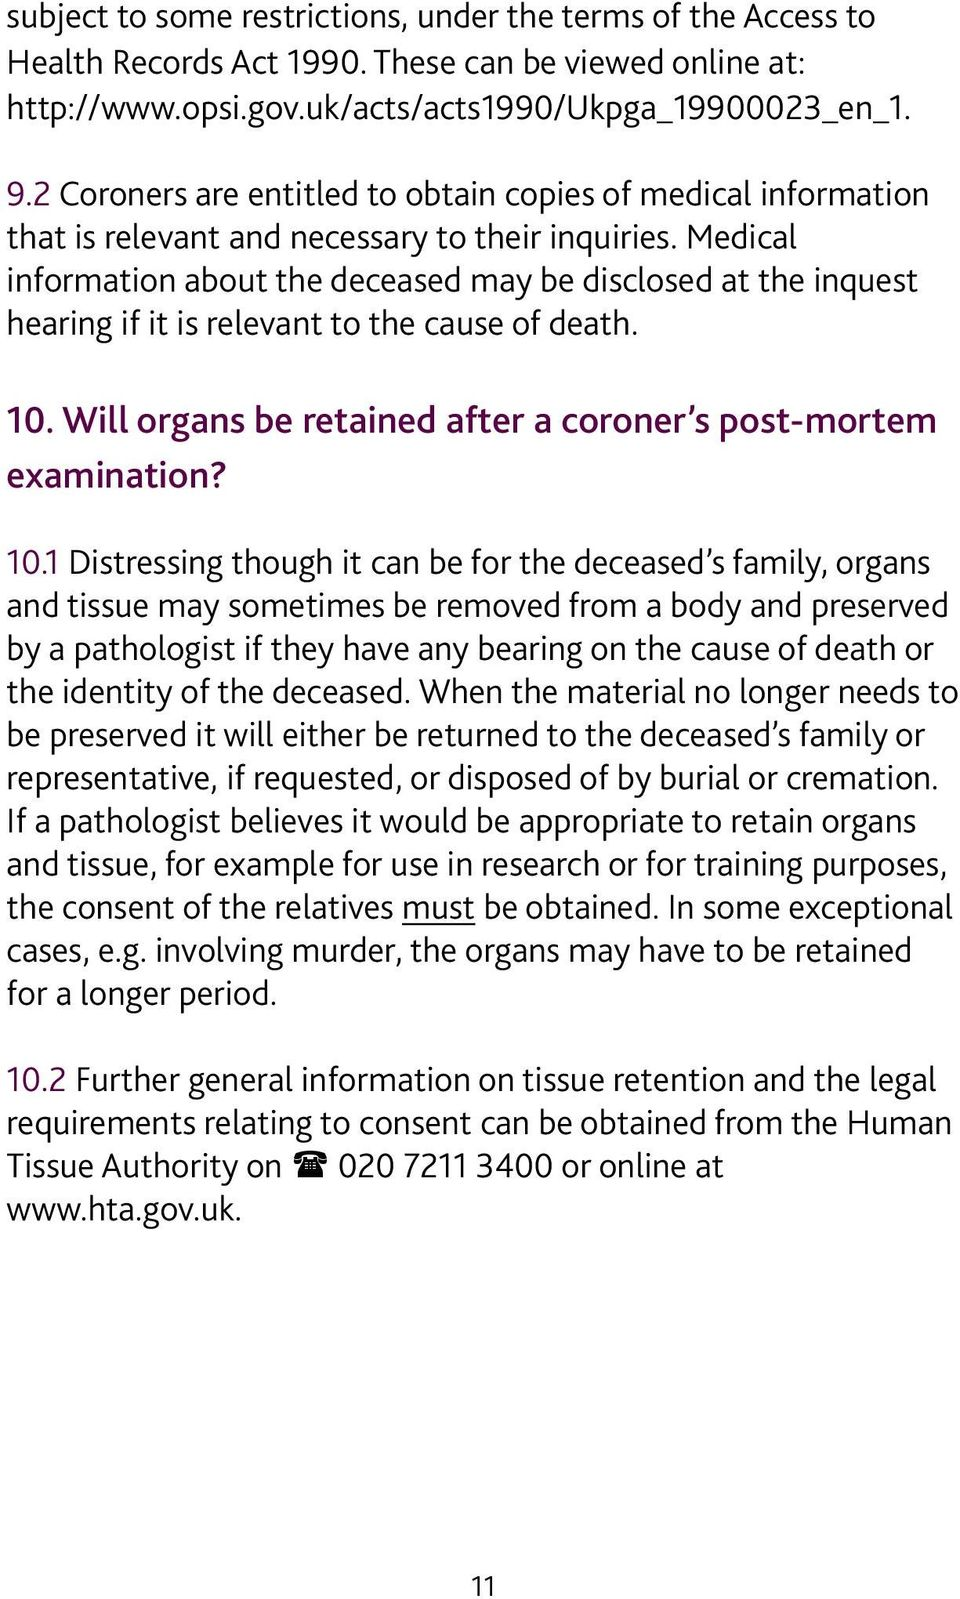 Medical information about the deceased may be disclosed at the inquest hearing if it is relevant to the cause of death. 10.